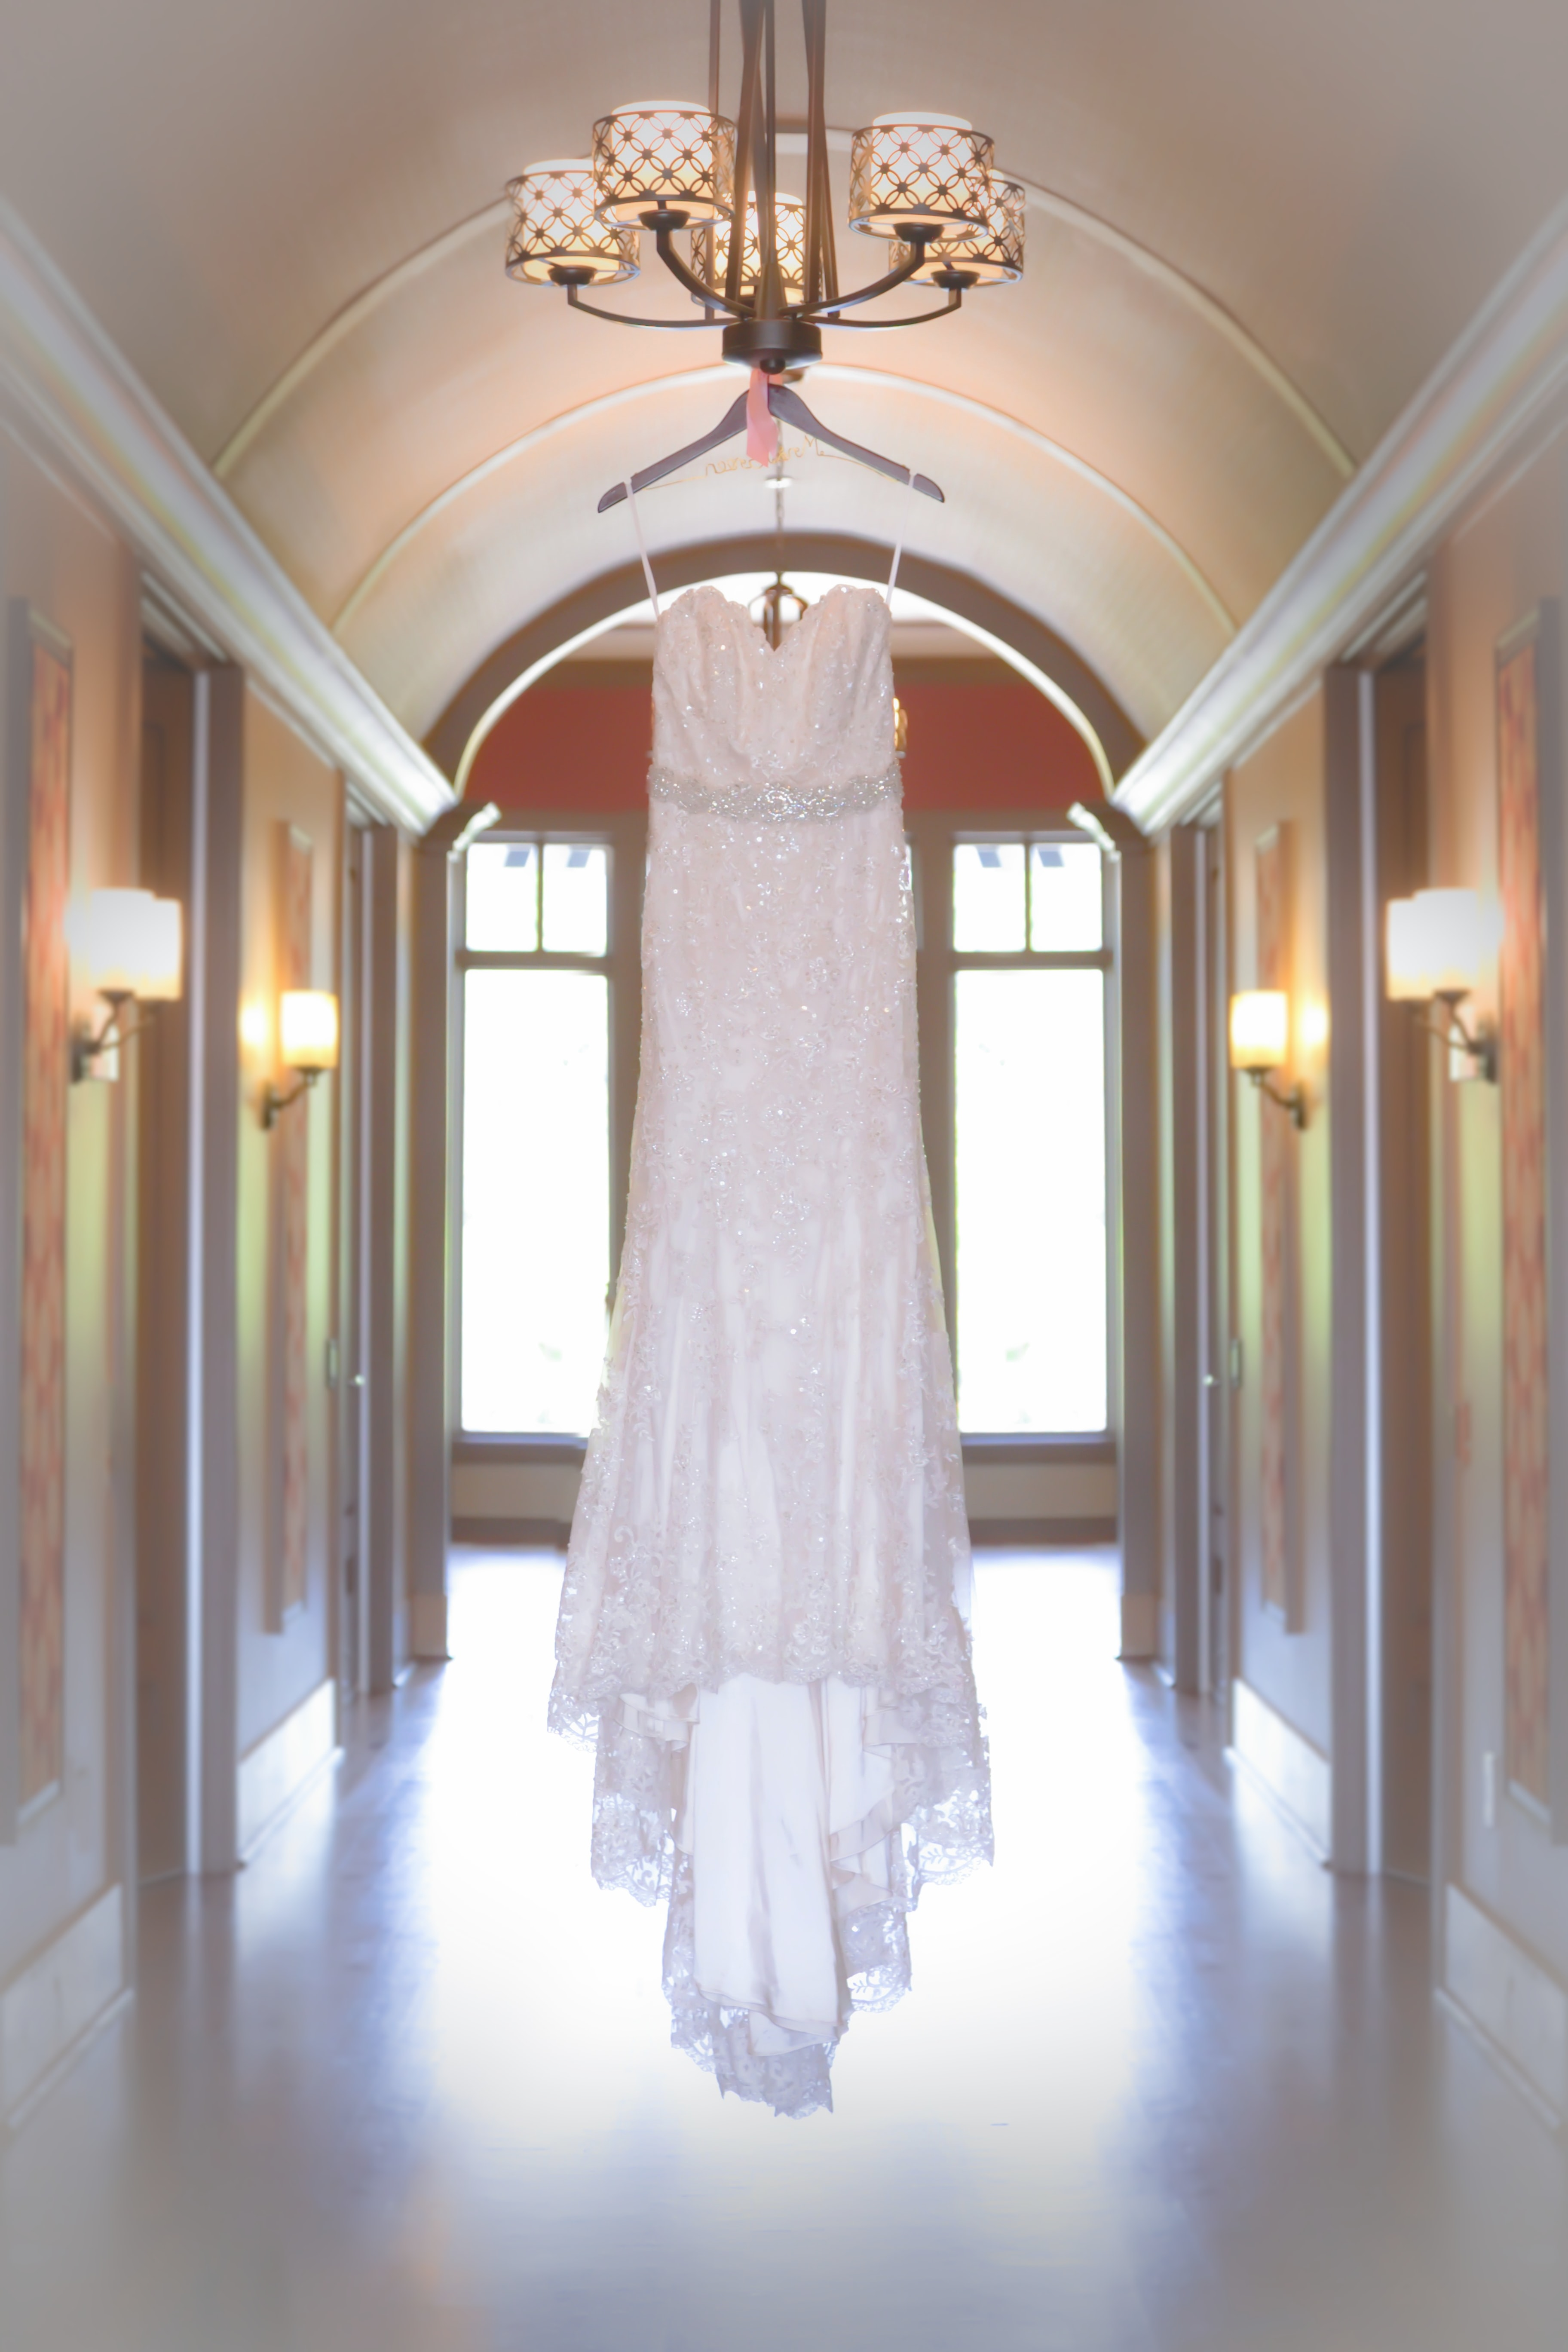 Thin wedding dress hangs from Chandelier in arched hall